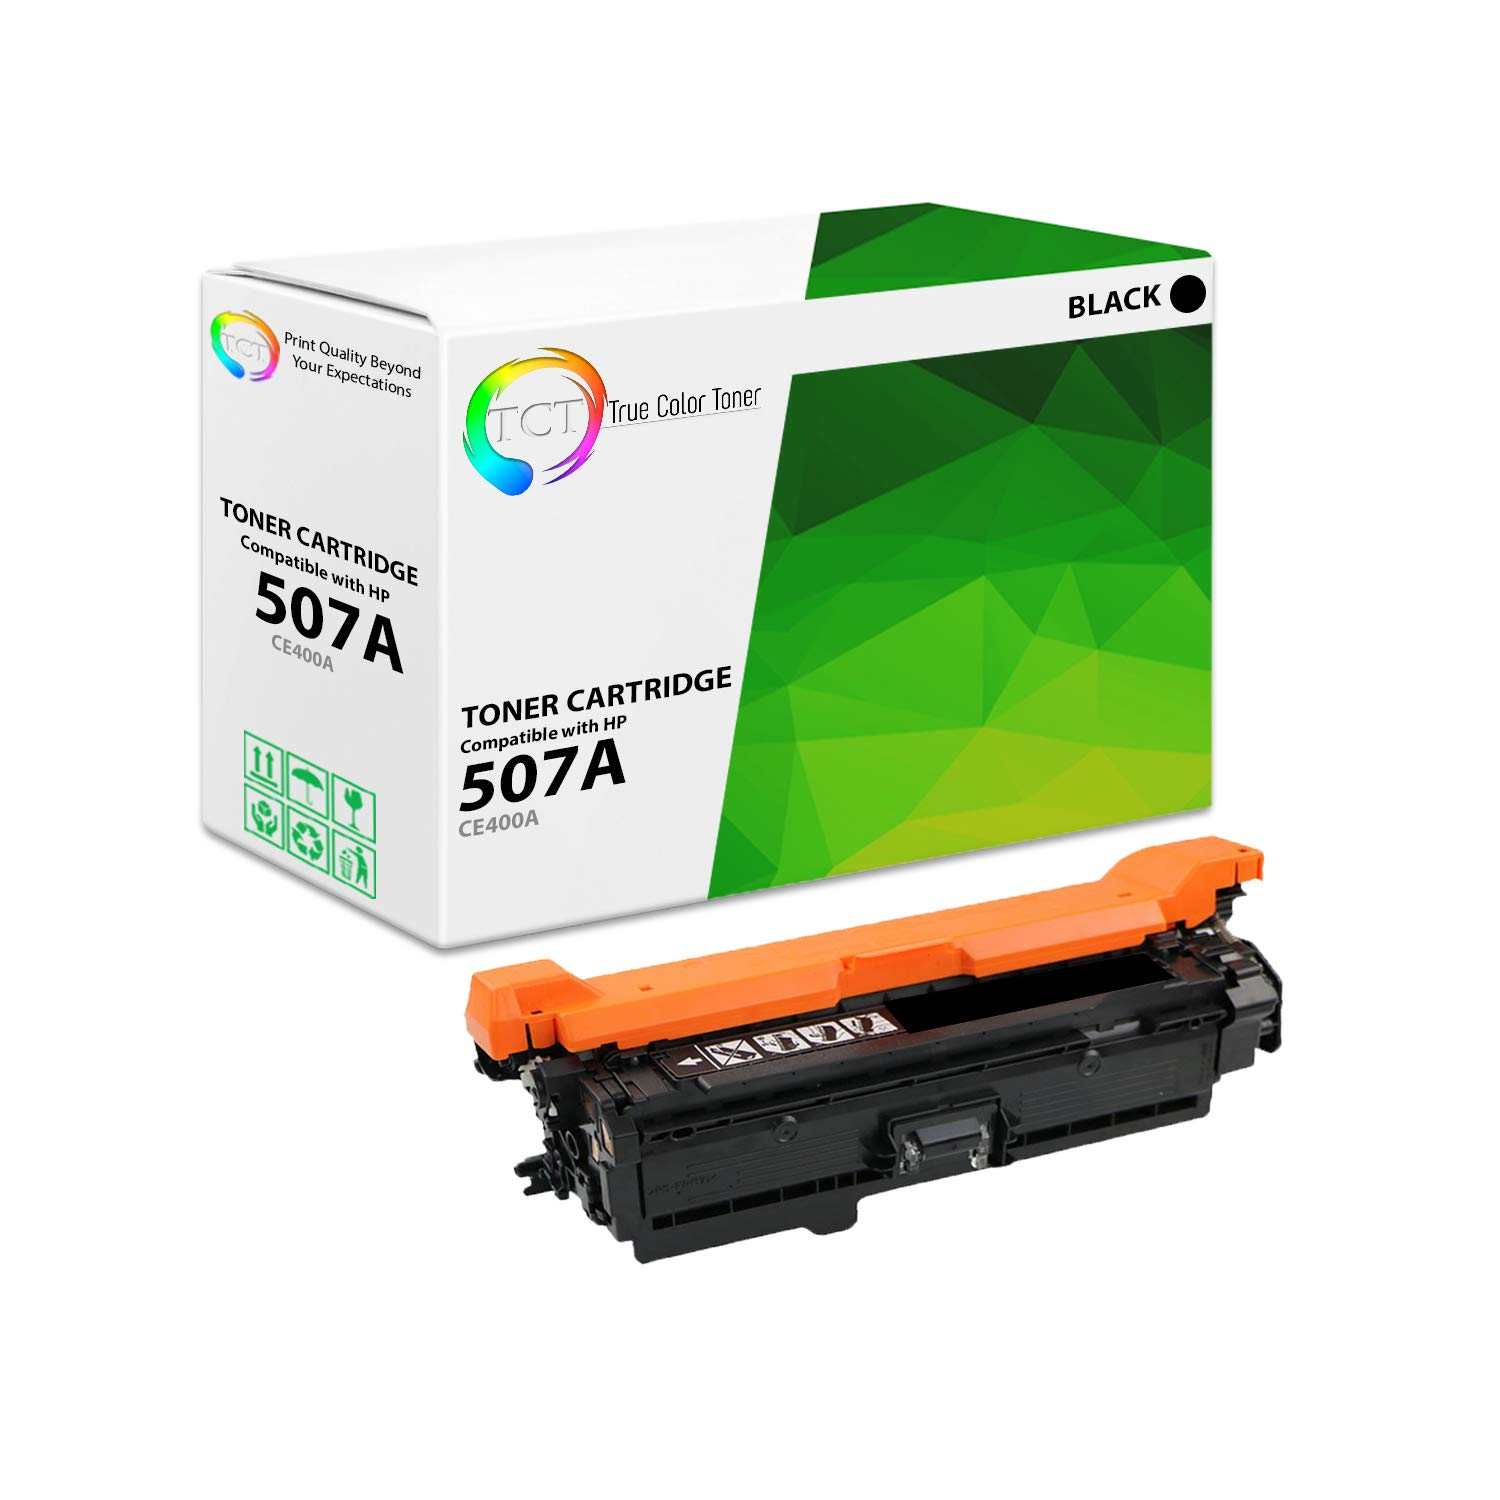 M12W - 2 Pack TCT Premium Compatible Toner Cartridge Replacement for HP 79A CF279A Black Works with HP Laserjet Pro M12A 1,000 Pages MFP M26A M26NW Printers